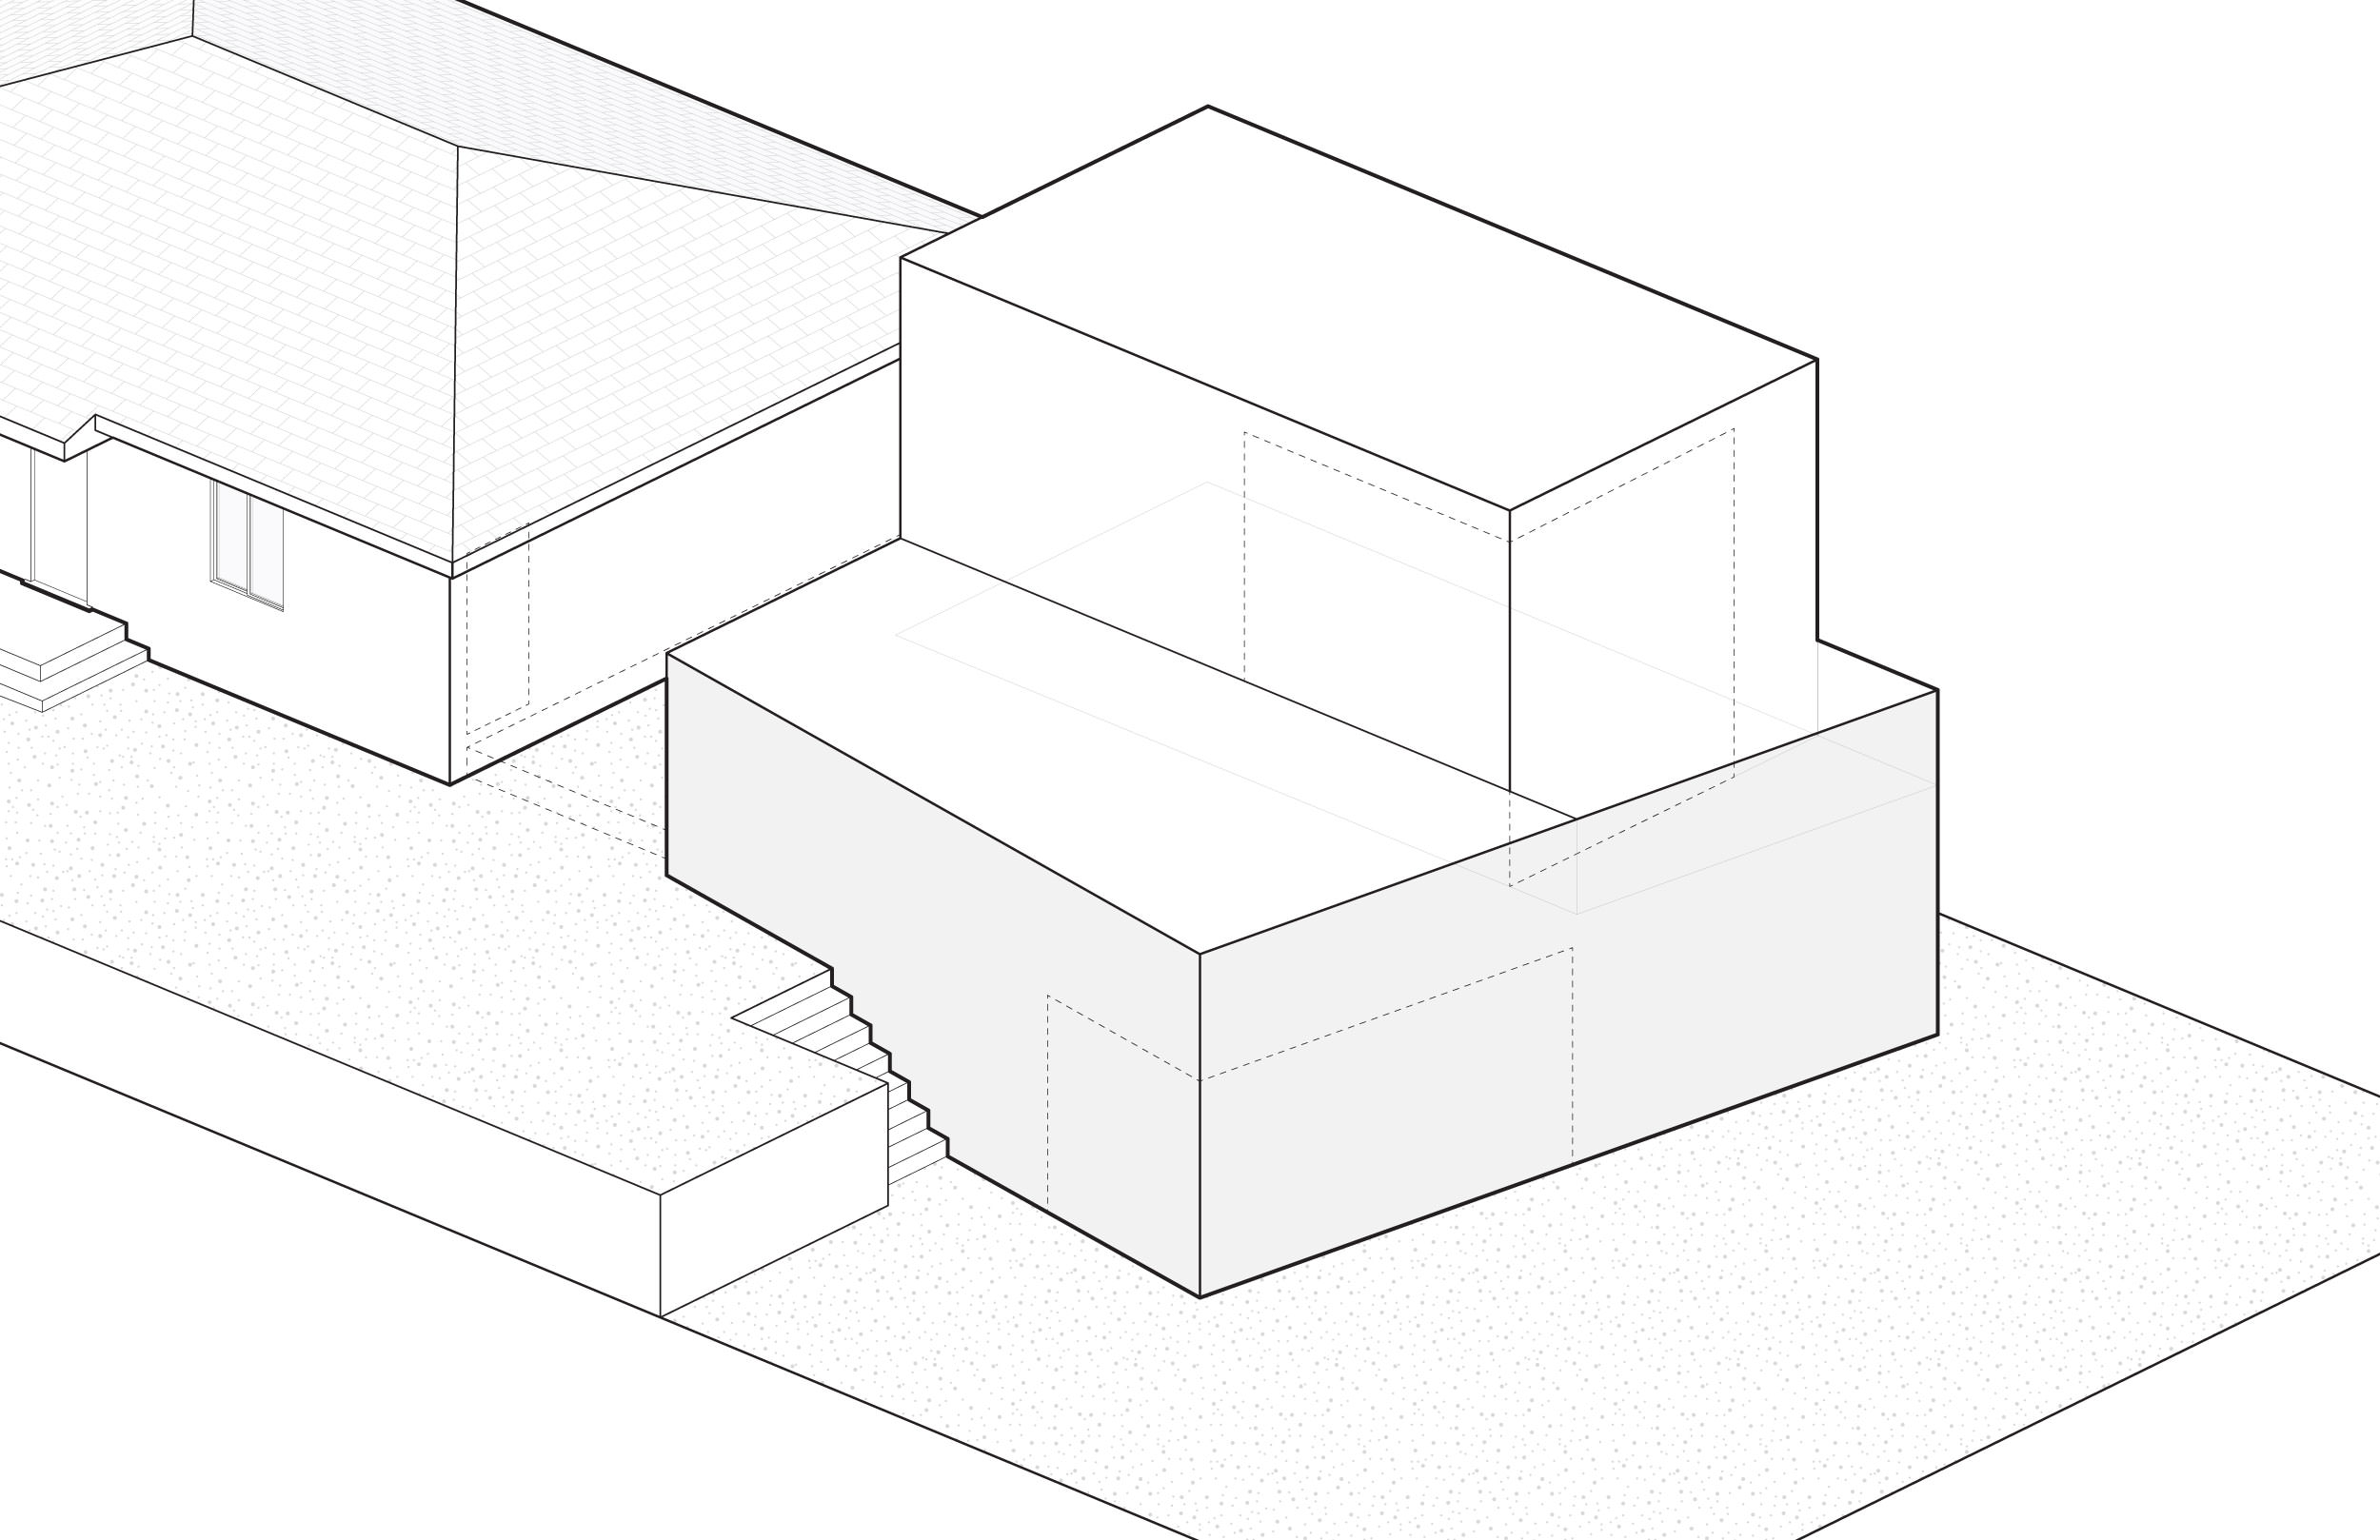 4. Rotate the addition's front to face the view and to create a second floor balcony.